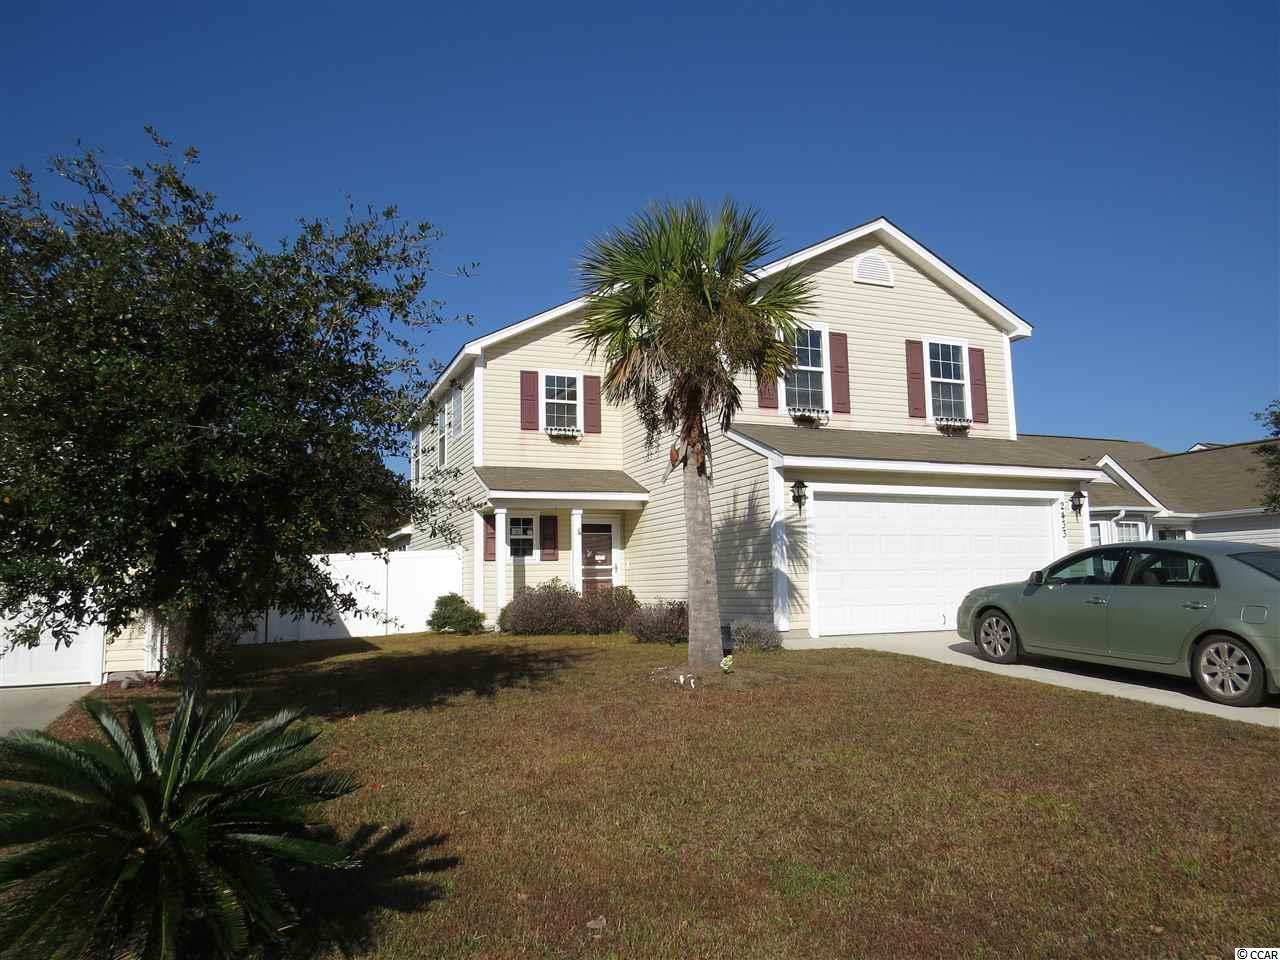 2433 Whetstone, Myrtle Beach, SC 29579